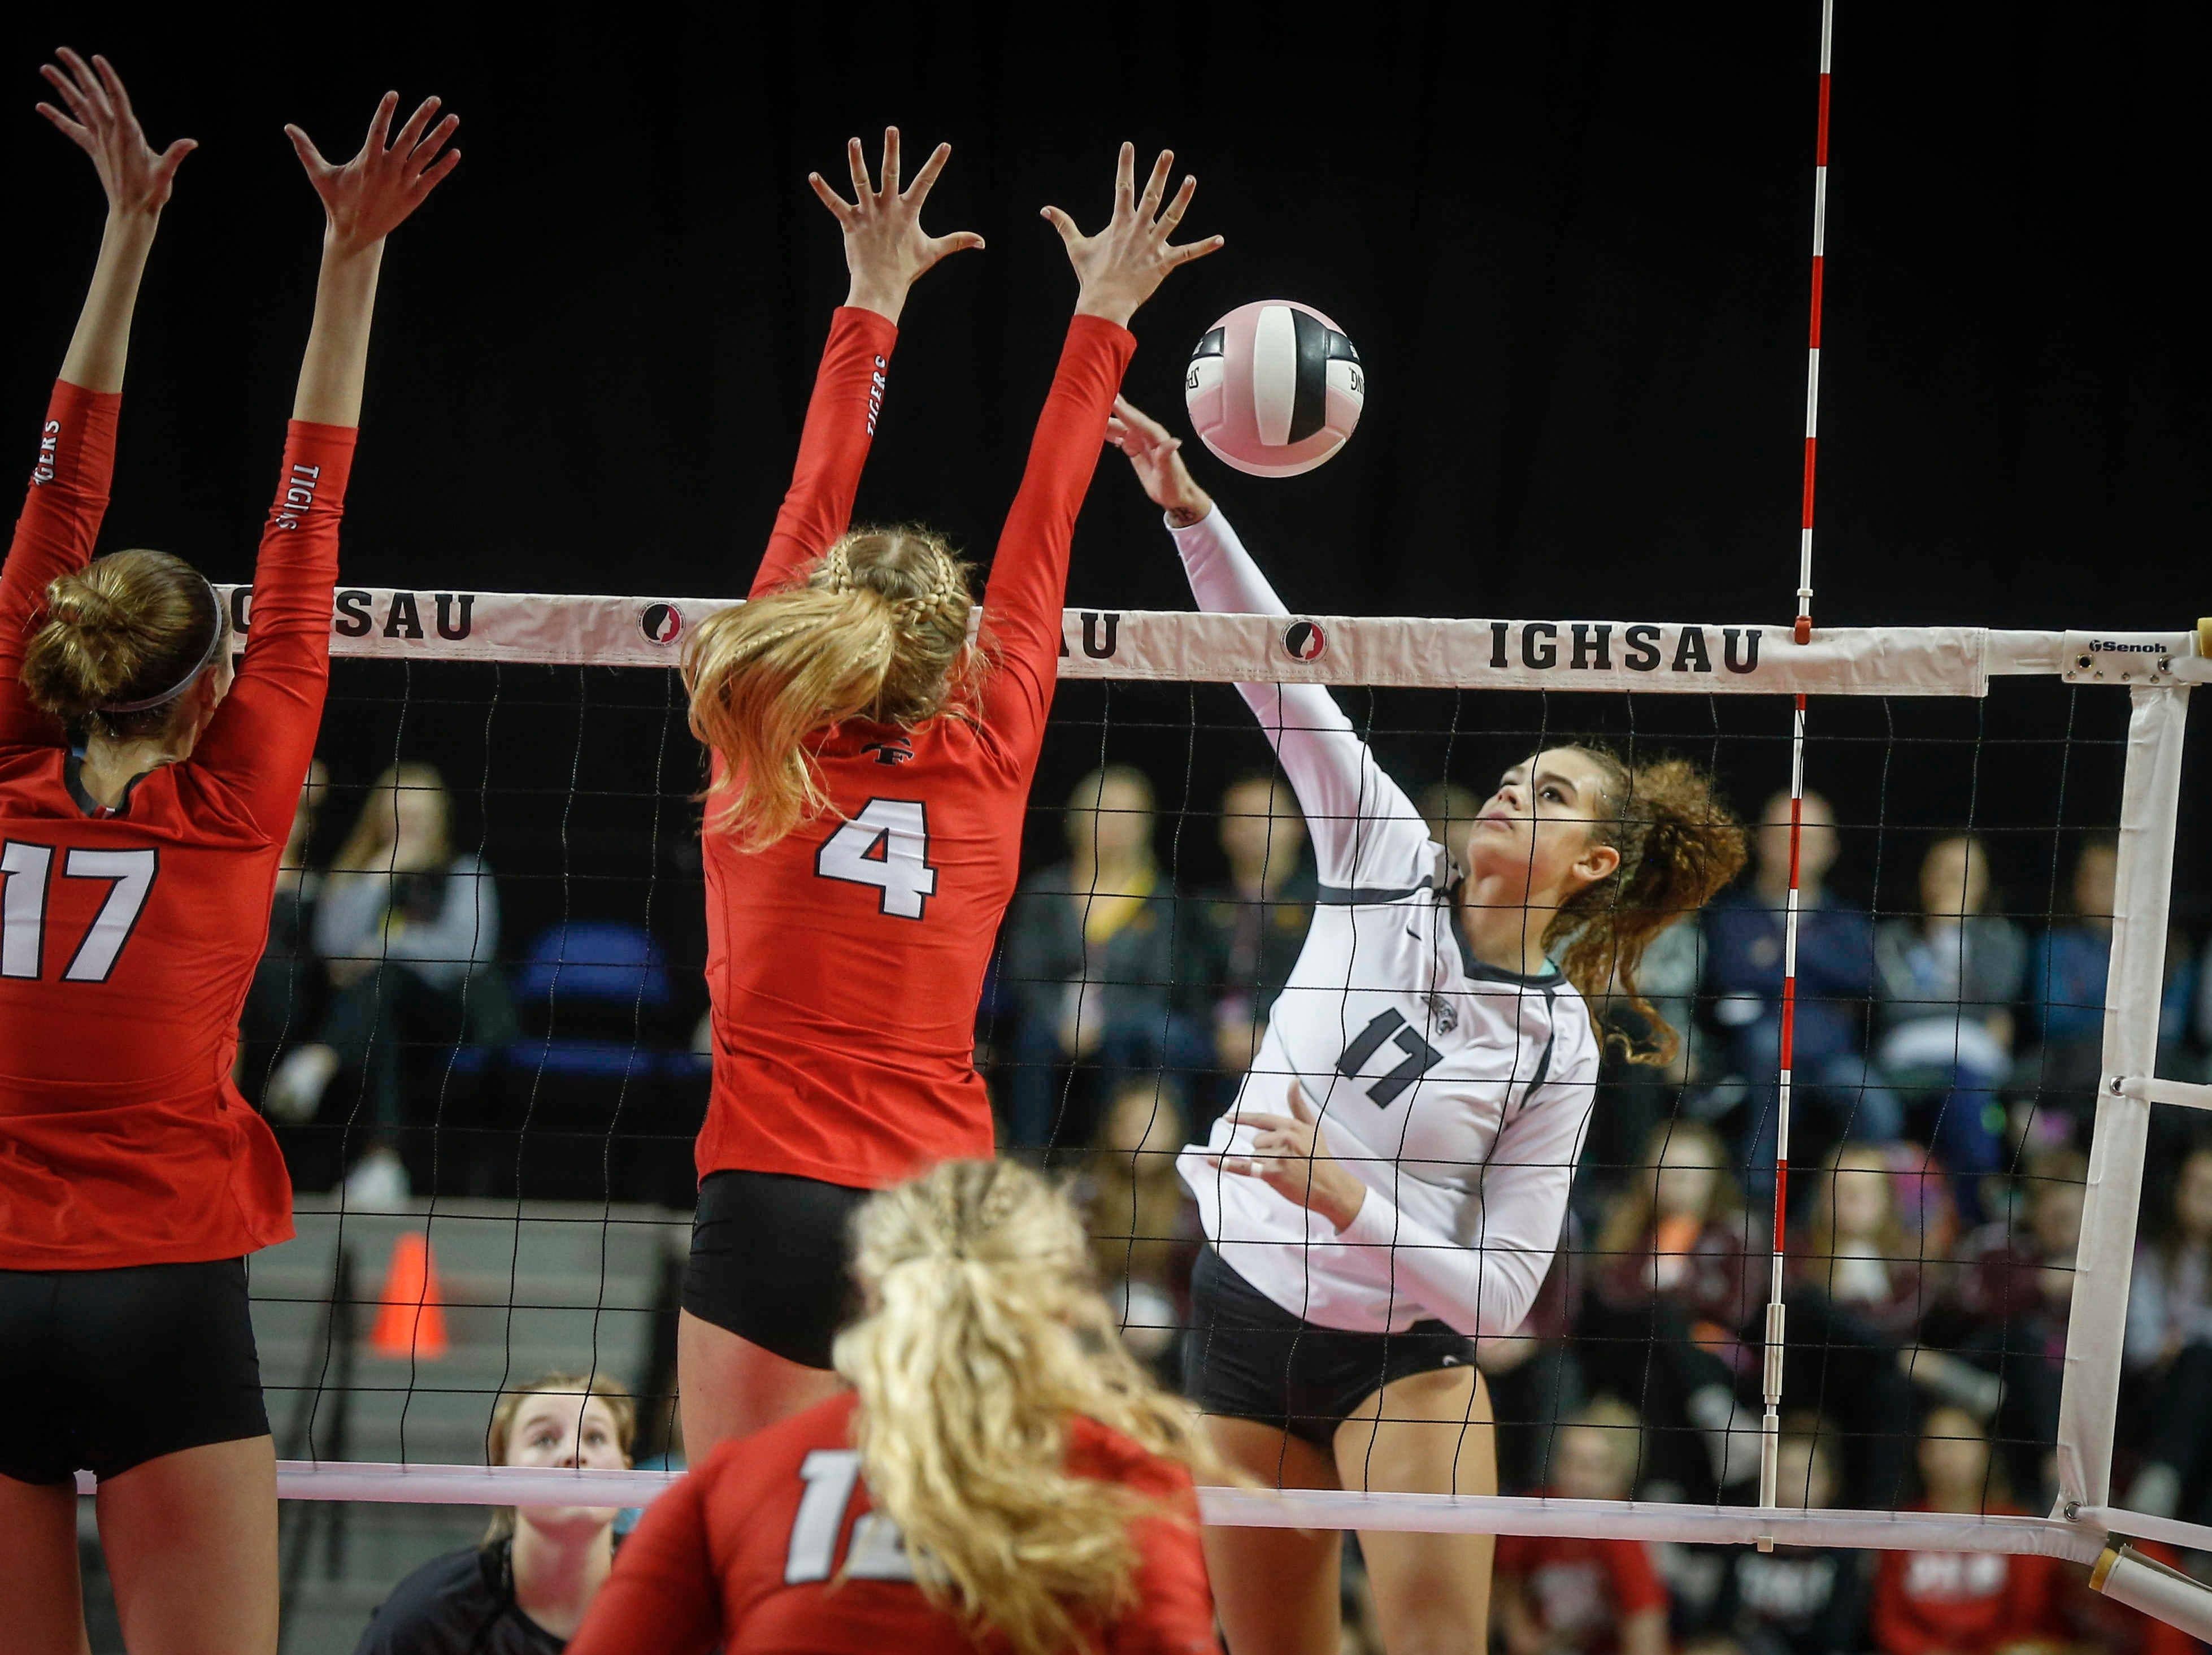 Ankeny Centennial's Ari Winters drills a shot over the net against Cedar Falls during the Class 5A state volleyball tournament championship game on Friday, Nov. 9, 2018, in Cedar Rapids.